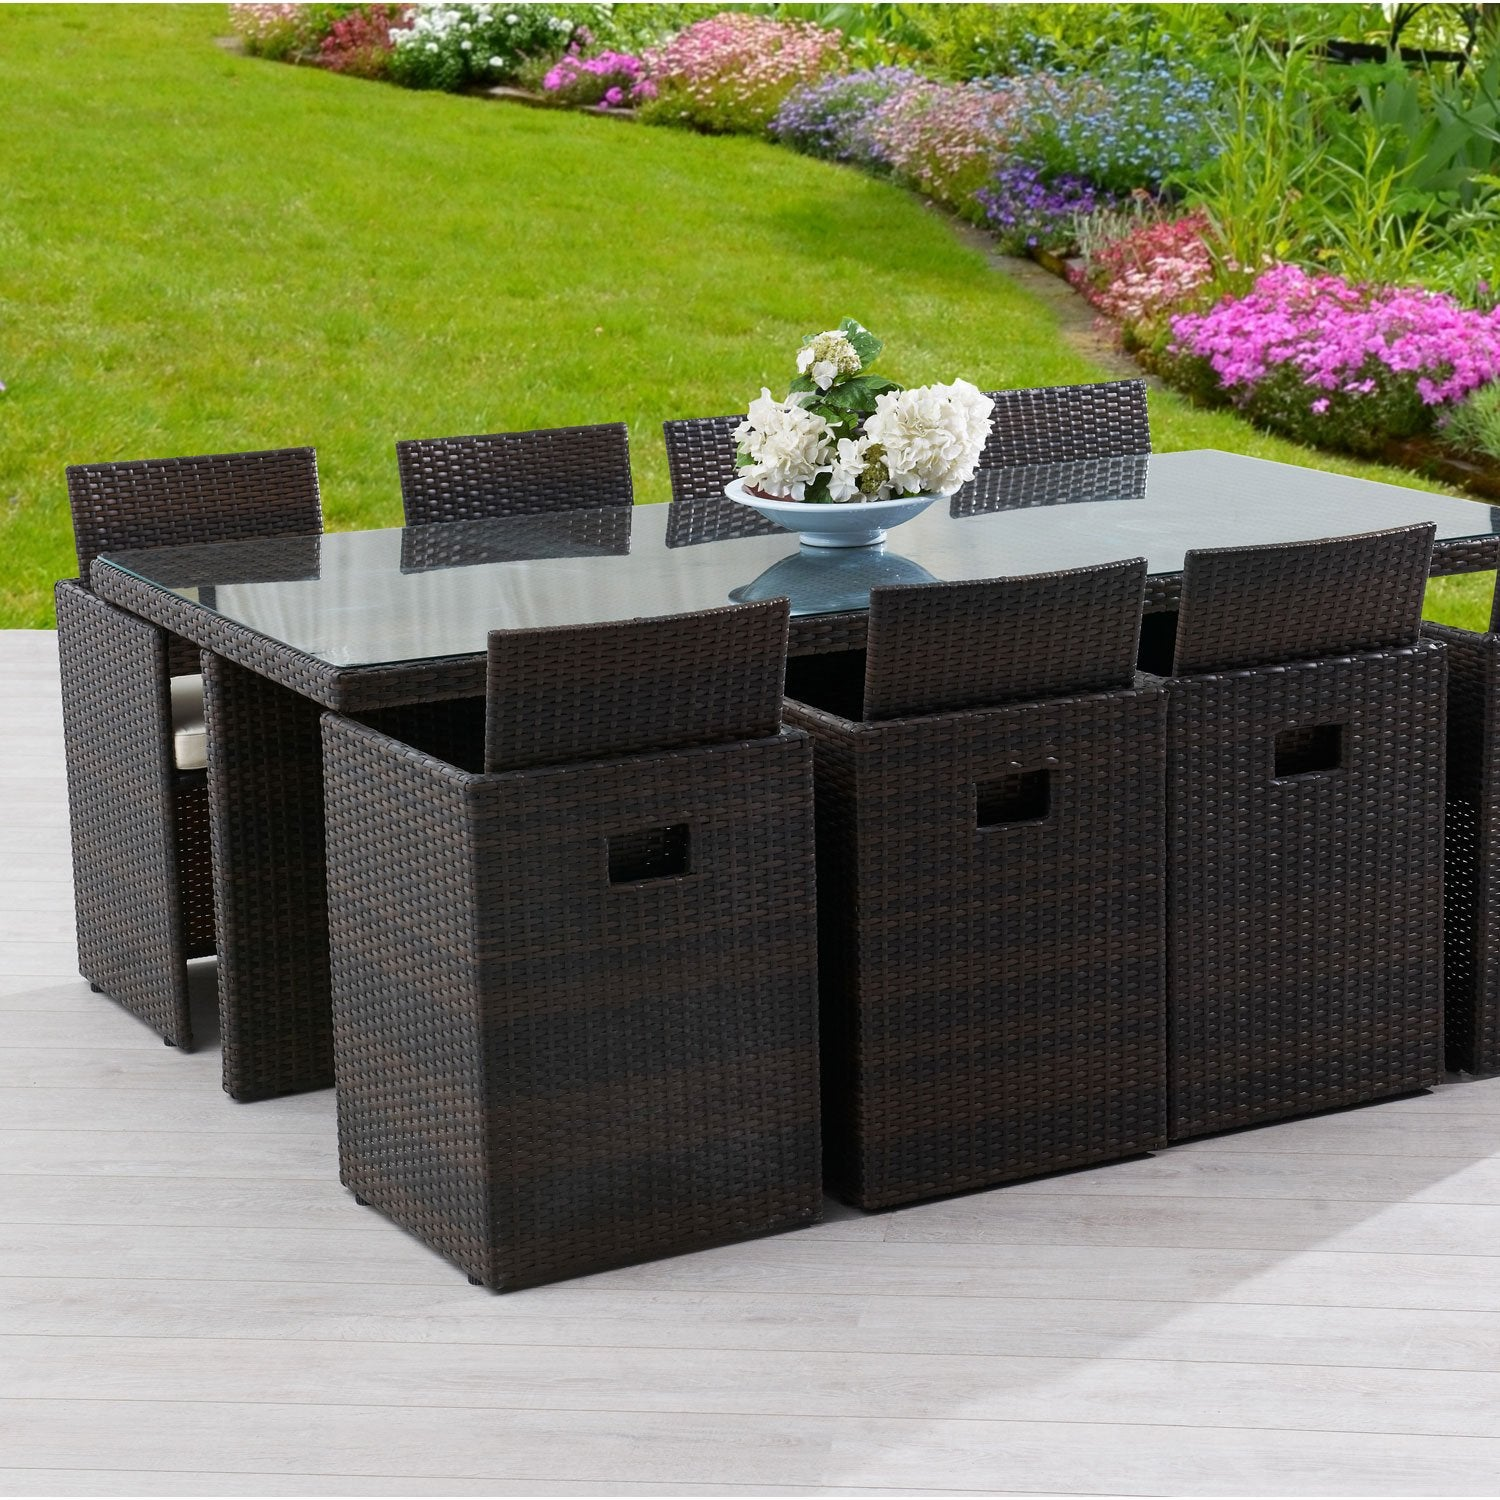 Salon de jardin encastrable r sine tress e marron 1 table - Fauteuil de jardin tresse ...